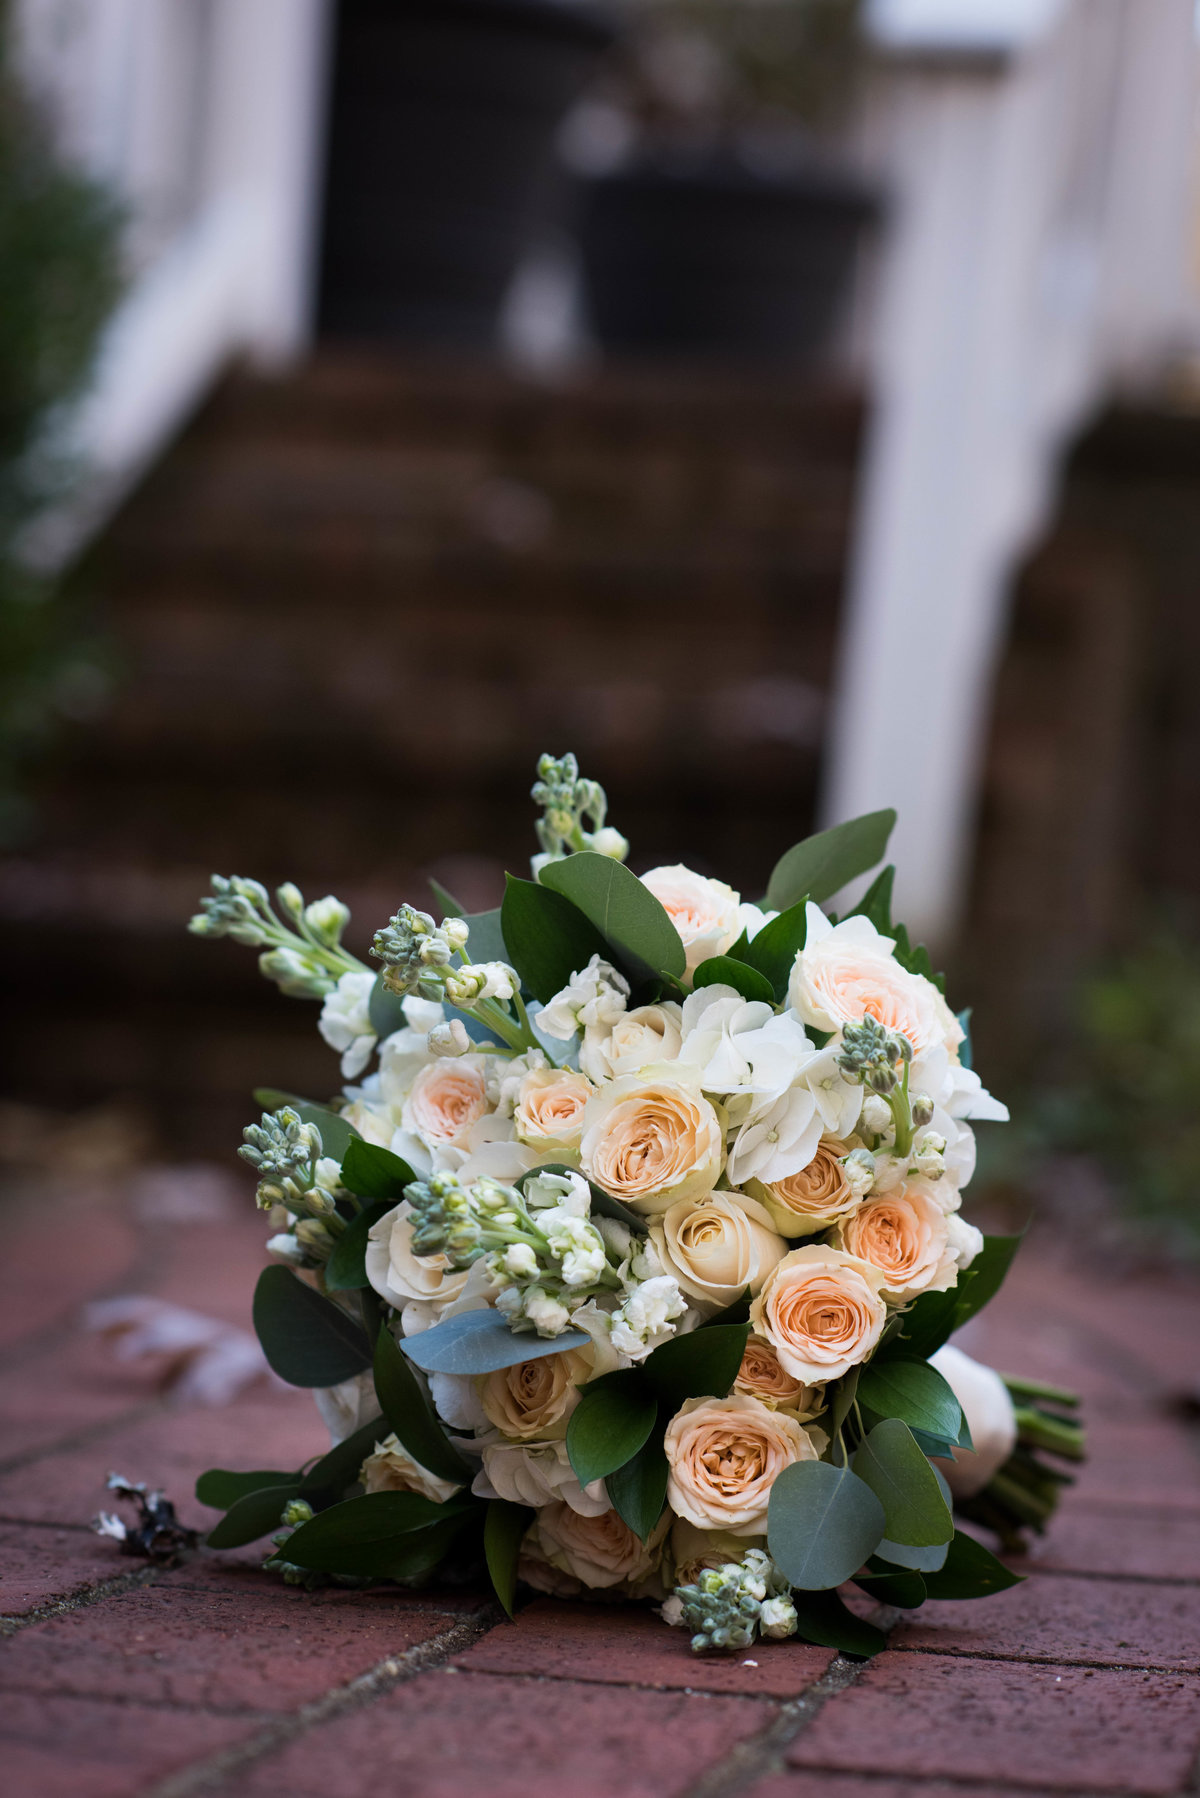 Wedding bouquet, Charlottesville VA.